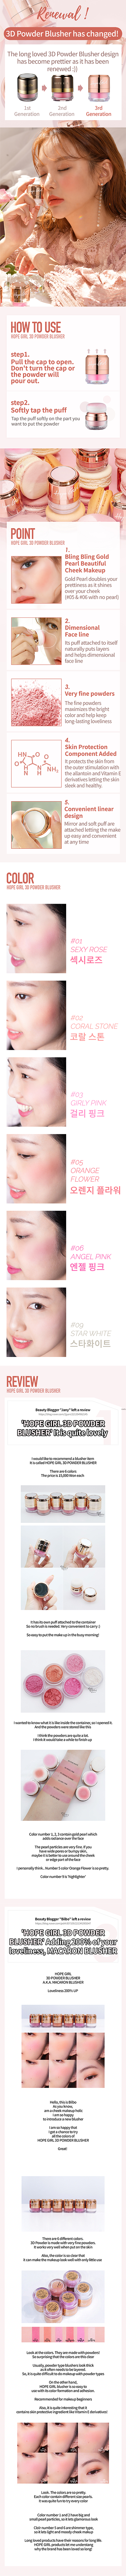 3D Powder Blusher (Girly Pink)